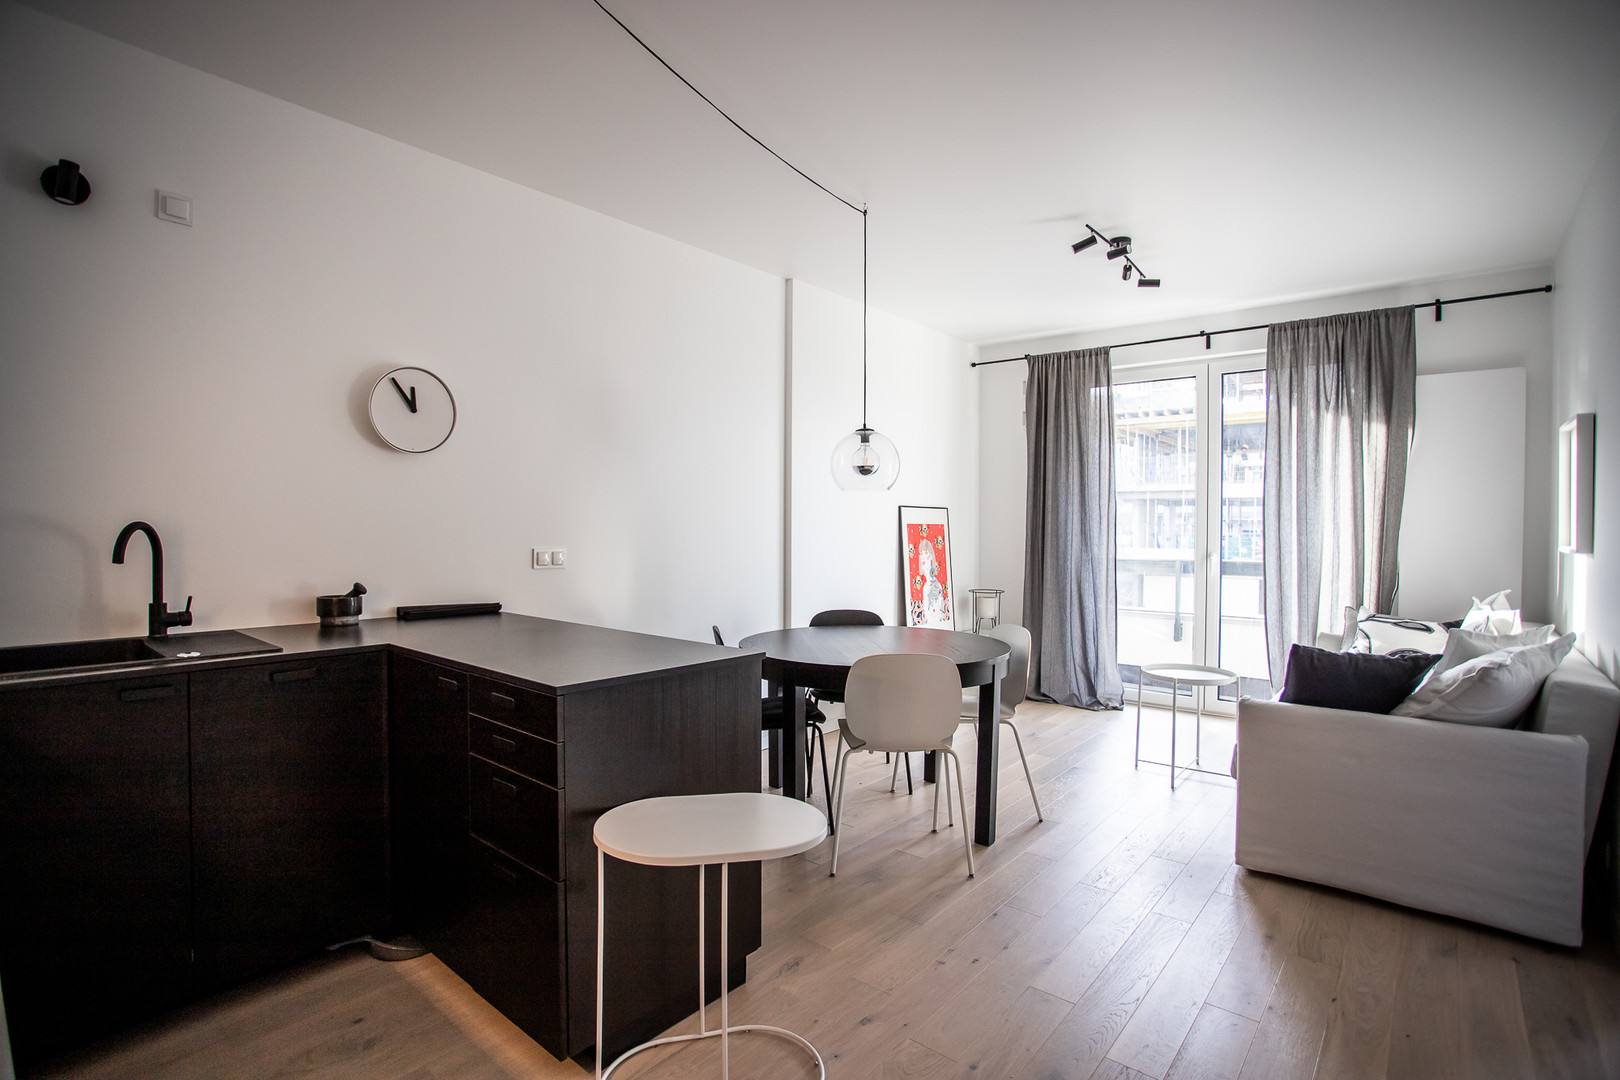 Flat to let Ursa Warsaw-7.jpg